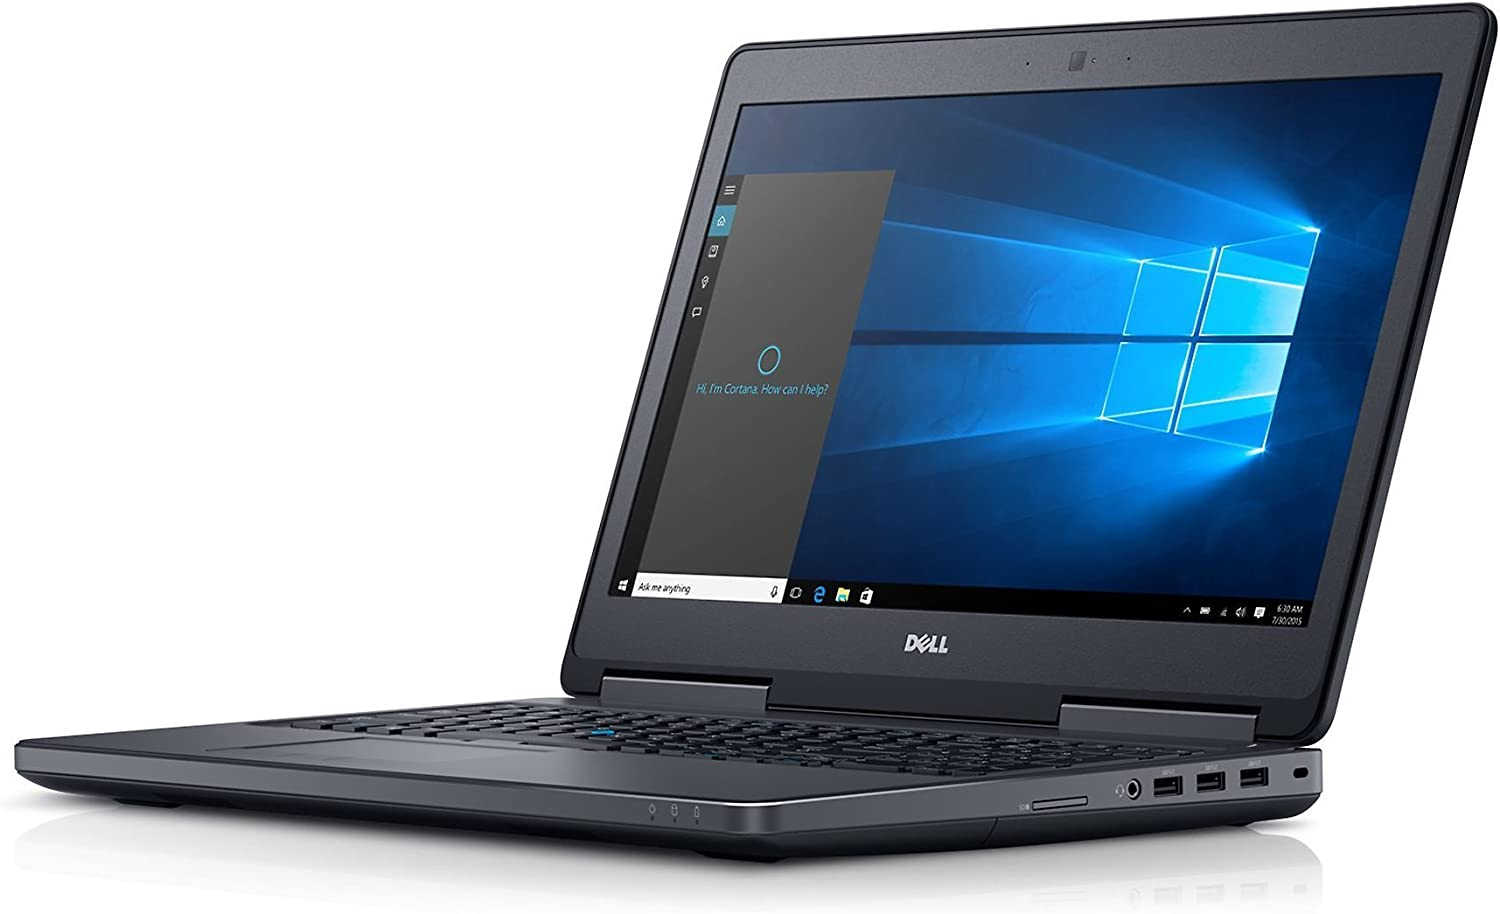 DELL PRECISION M7510 I7 6820HQ 3.6GHZ QUADRO M2000M 4GB 16GB 2133MHZ FHD 1080P 1TB SSD NT0006 (Renewed)